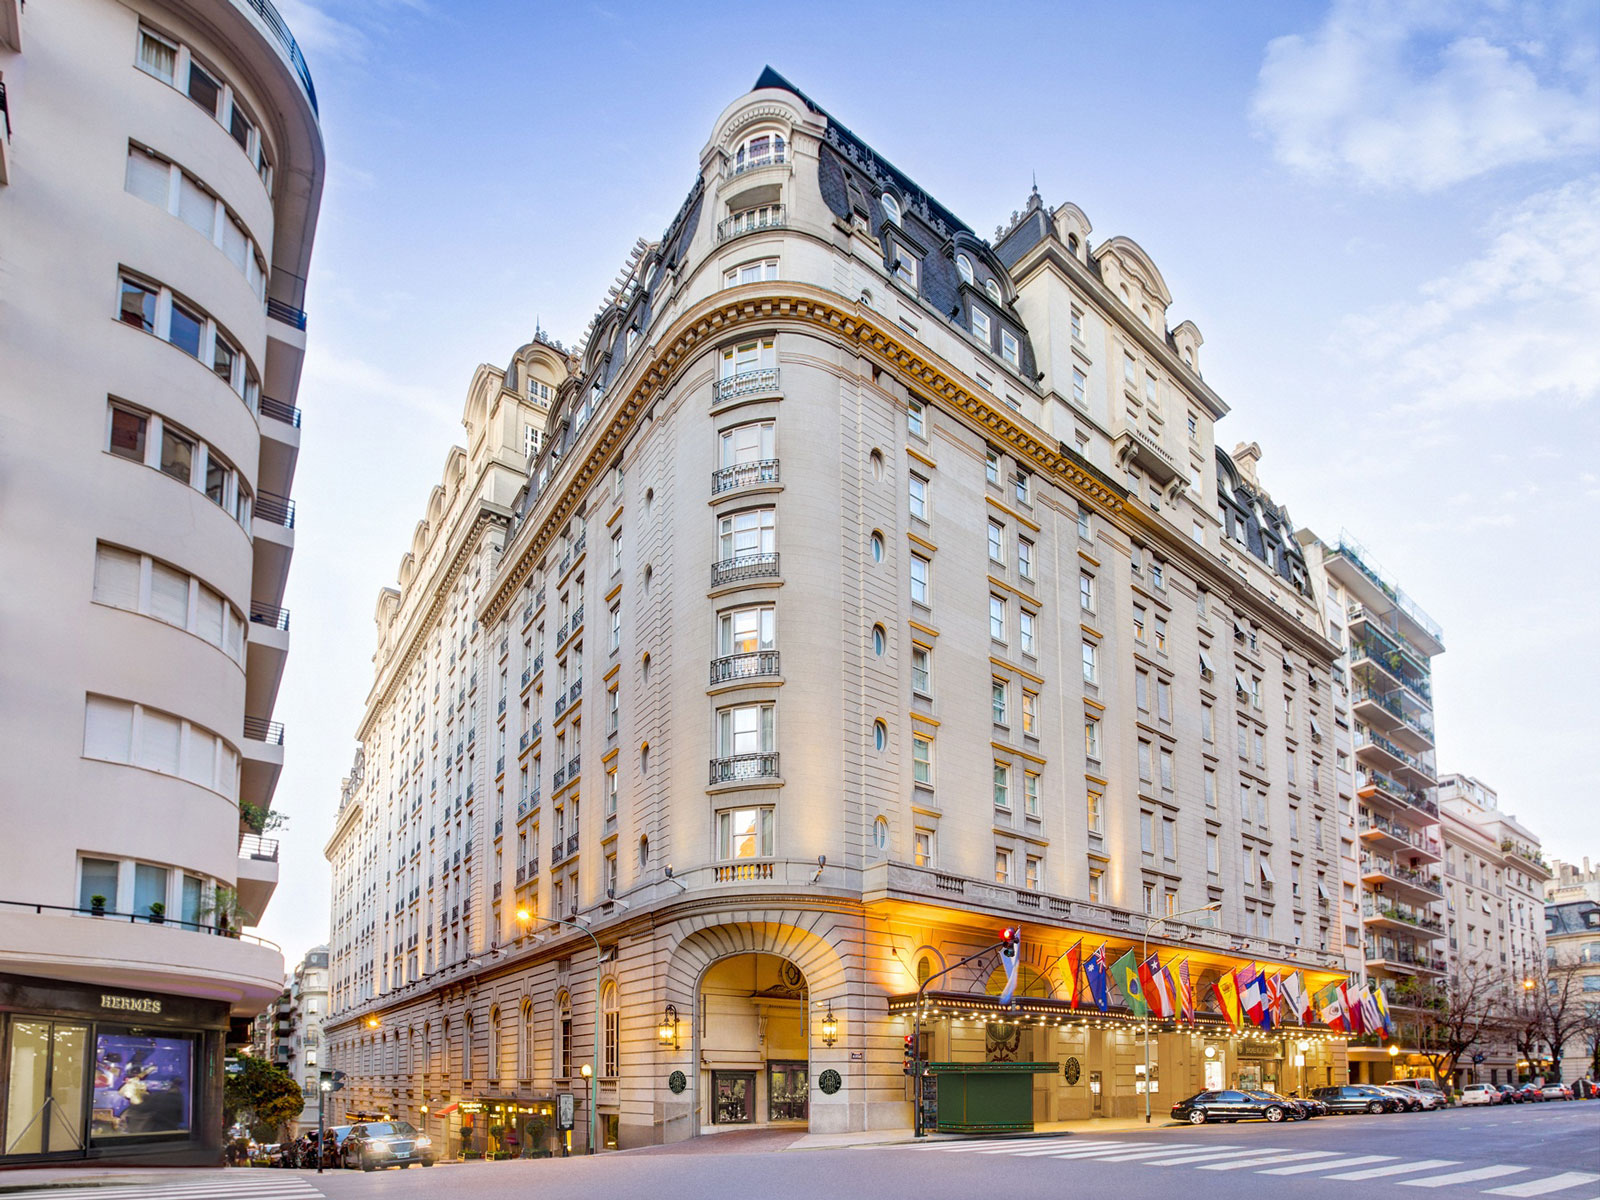 the grandest hotels in buenos aires